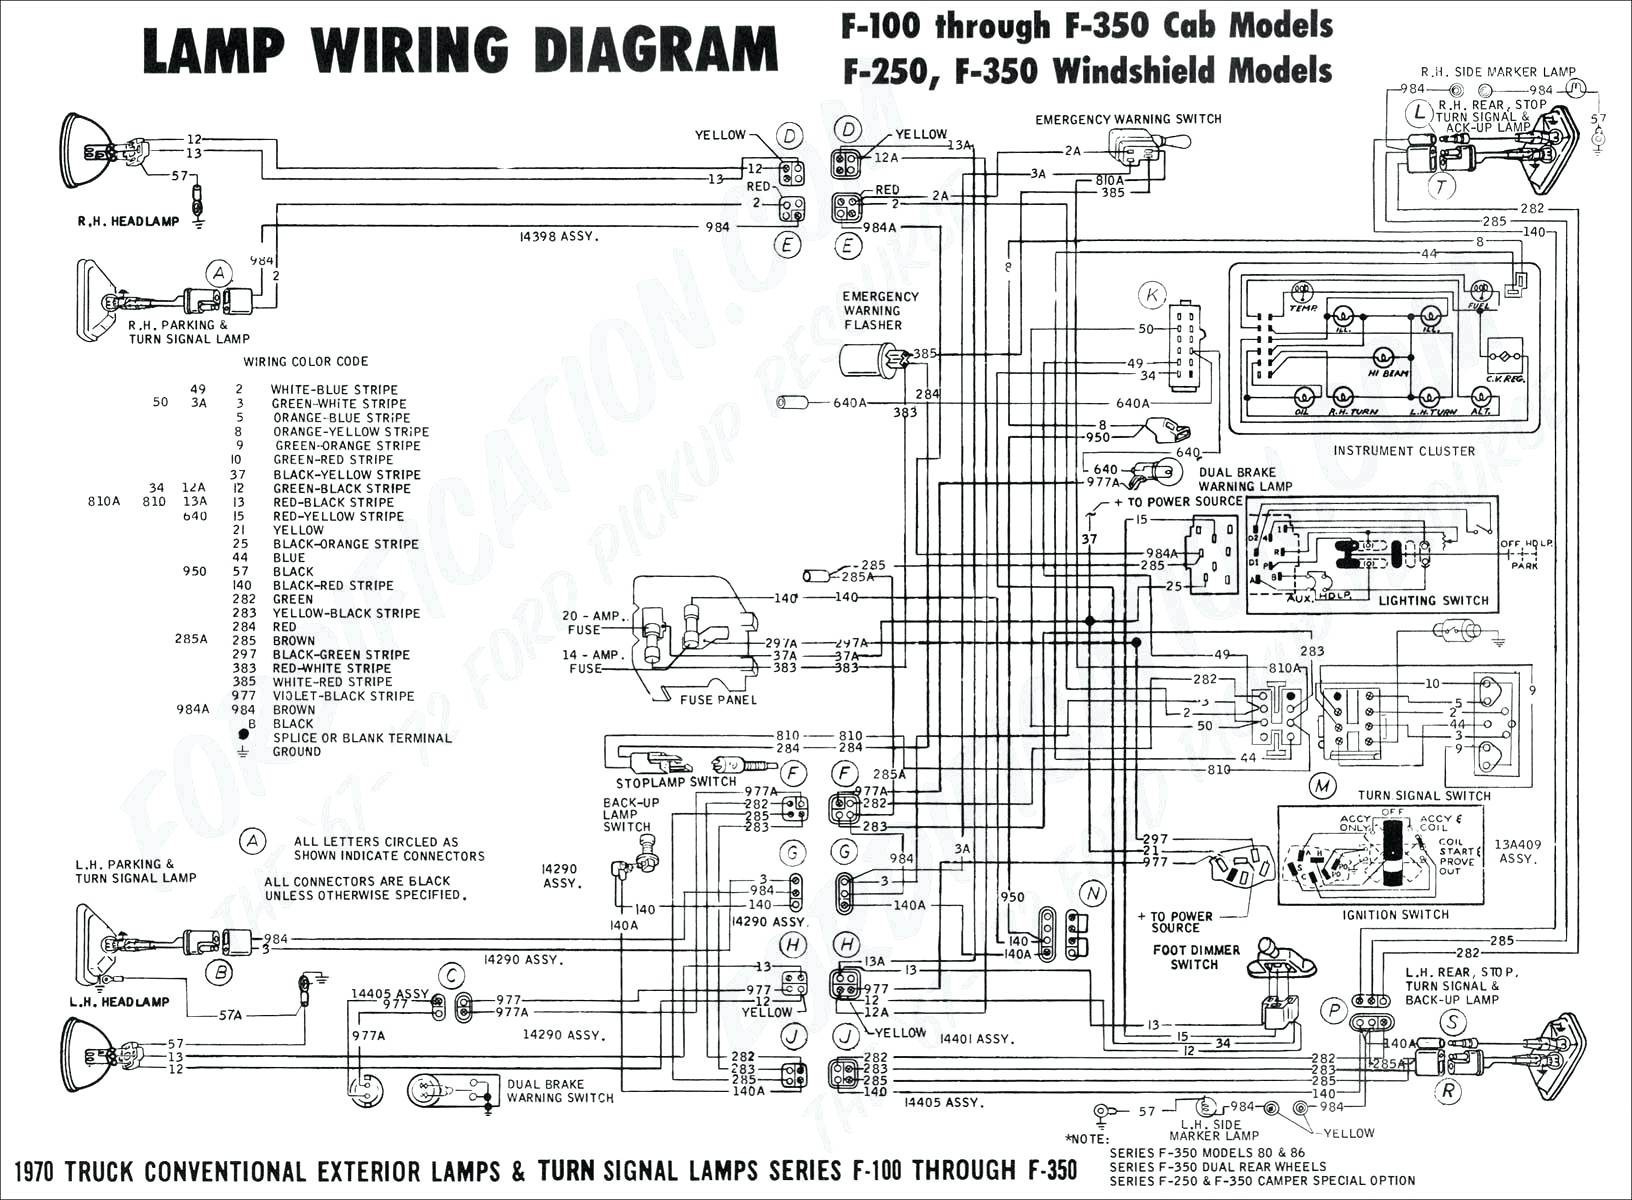 2007 dodge ram 1500 brake light wiring diagram Download-Wiring Diagram Brake Lights Fresh Brake Lights Wiring Diagram Elegant Brake Light Wiring Diagram 19-b